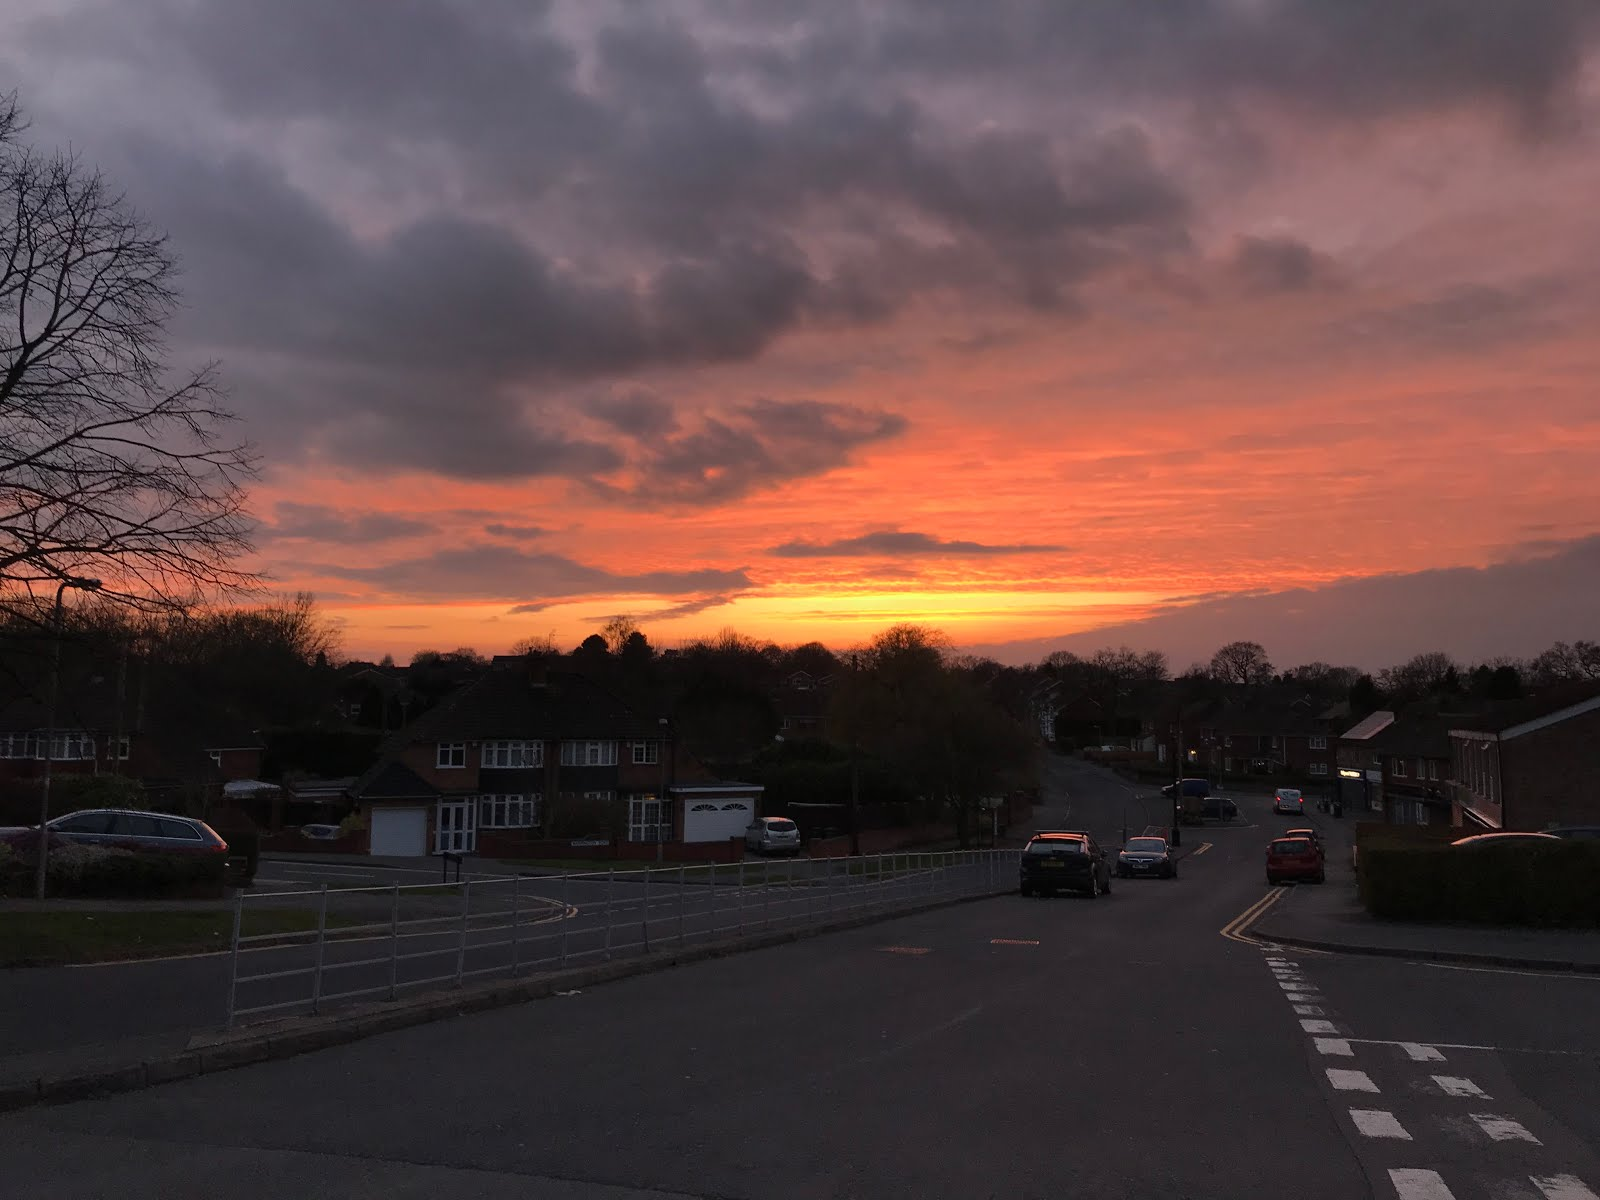 A sunset over houses in Wythall